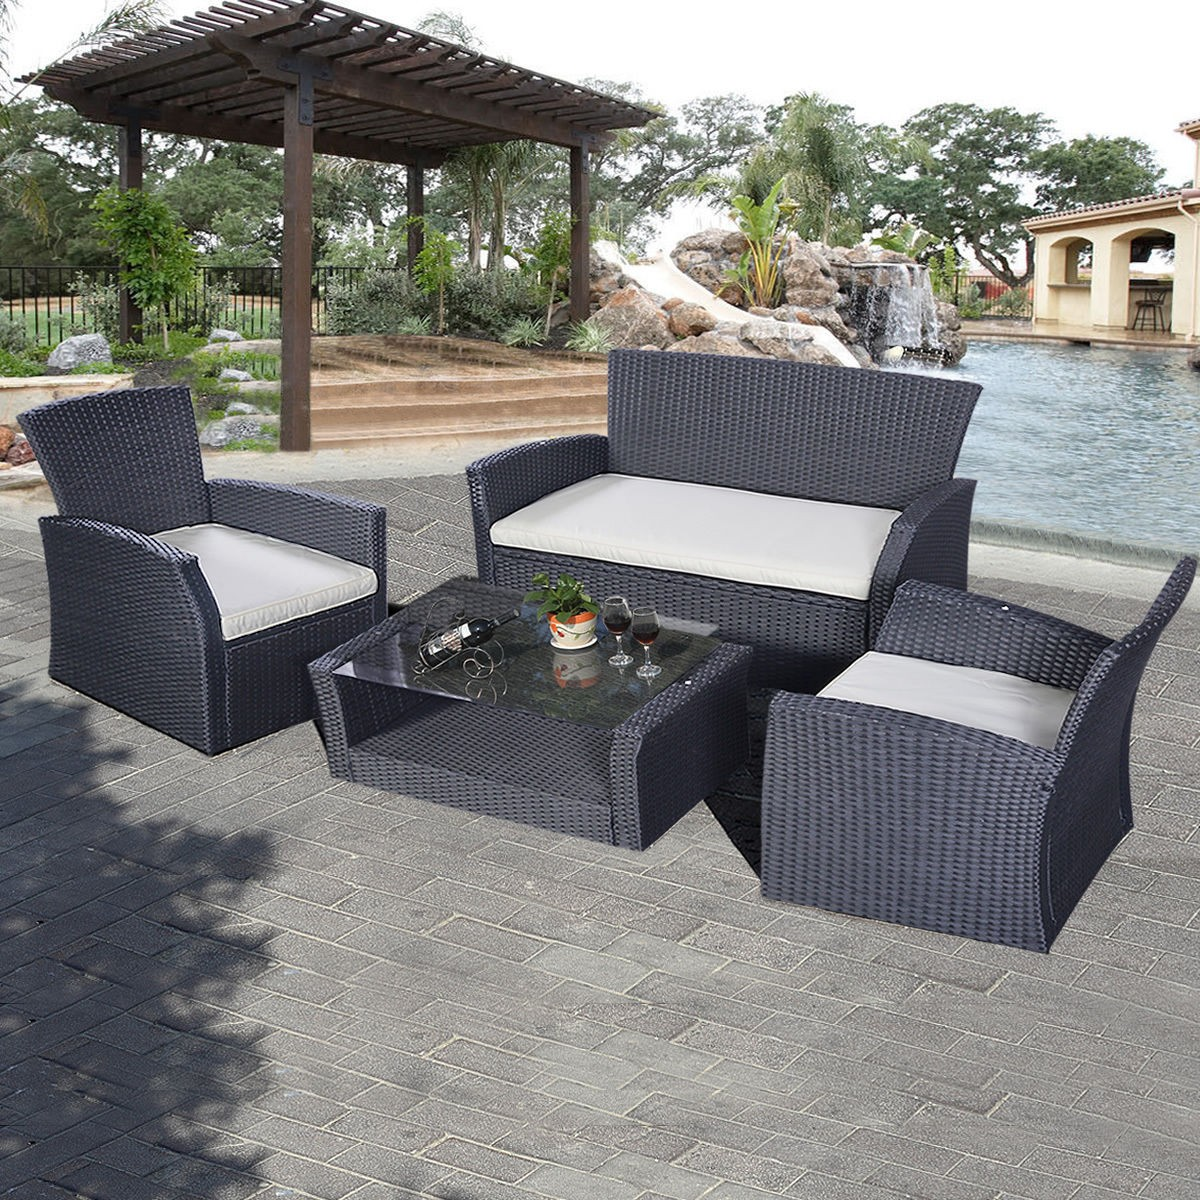 4pcs outdoor patio furniture set wicker garden lawn sofa rattan us rh ebay com ebay outdoor wicker furniture australia ebay outdoor wicker furniture australia